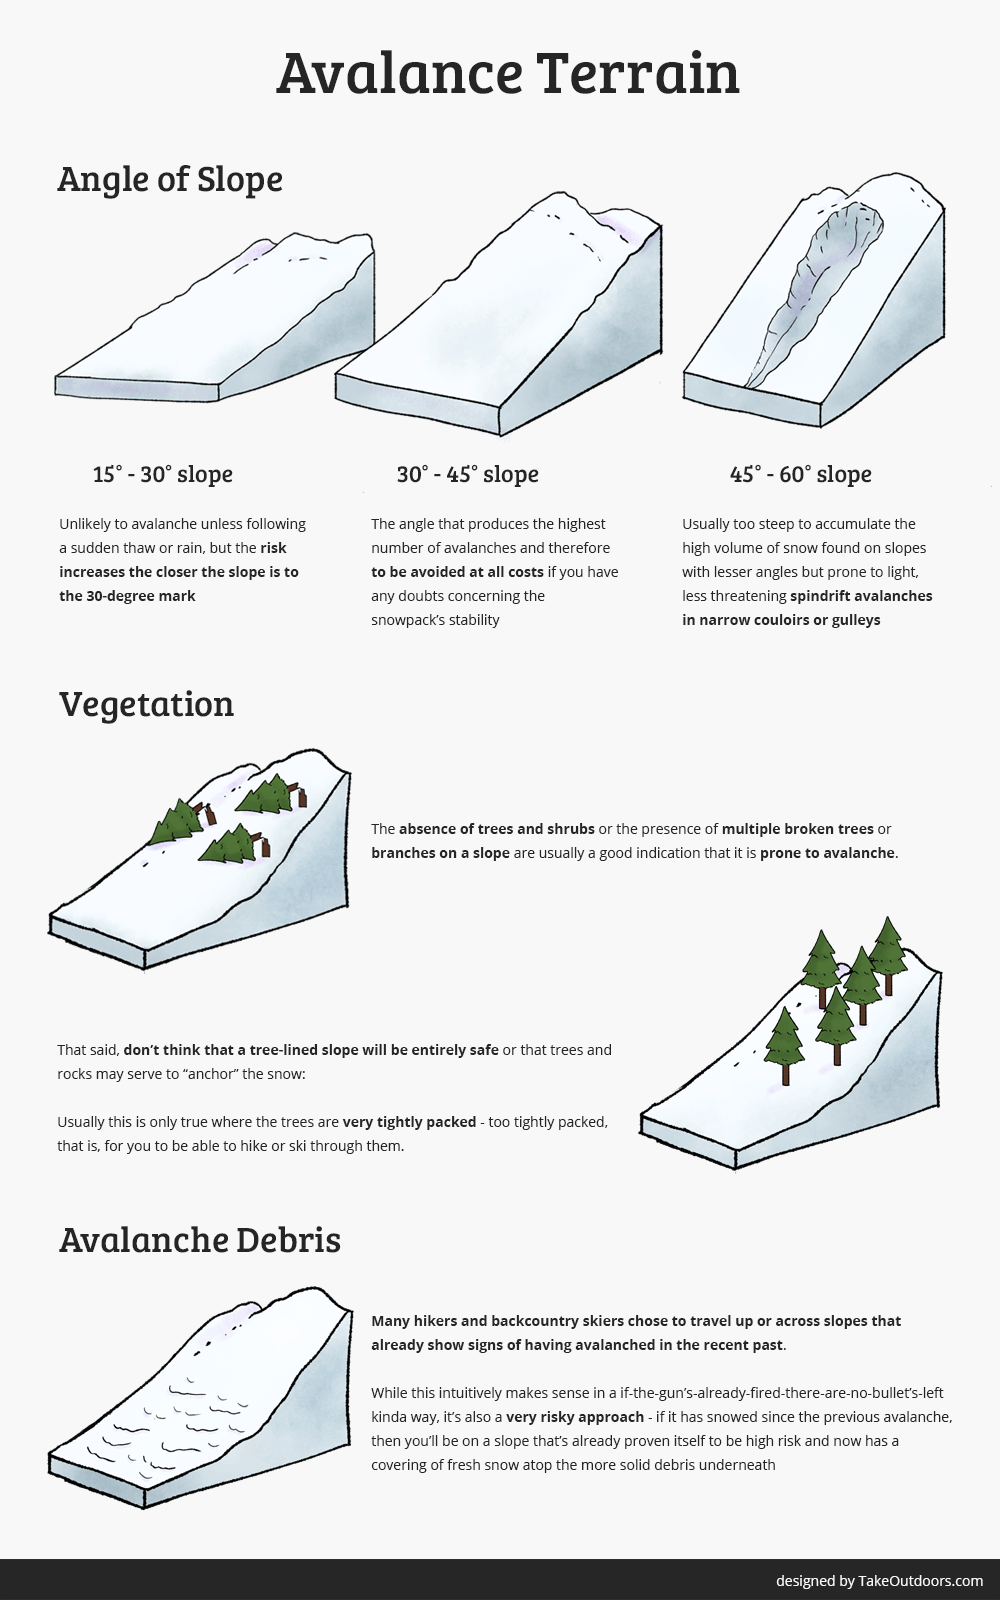 Infographic Guide to Identify Avalanche Terrains